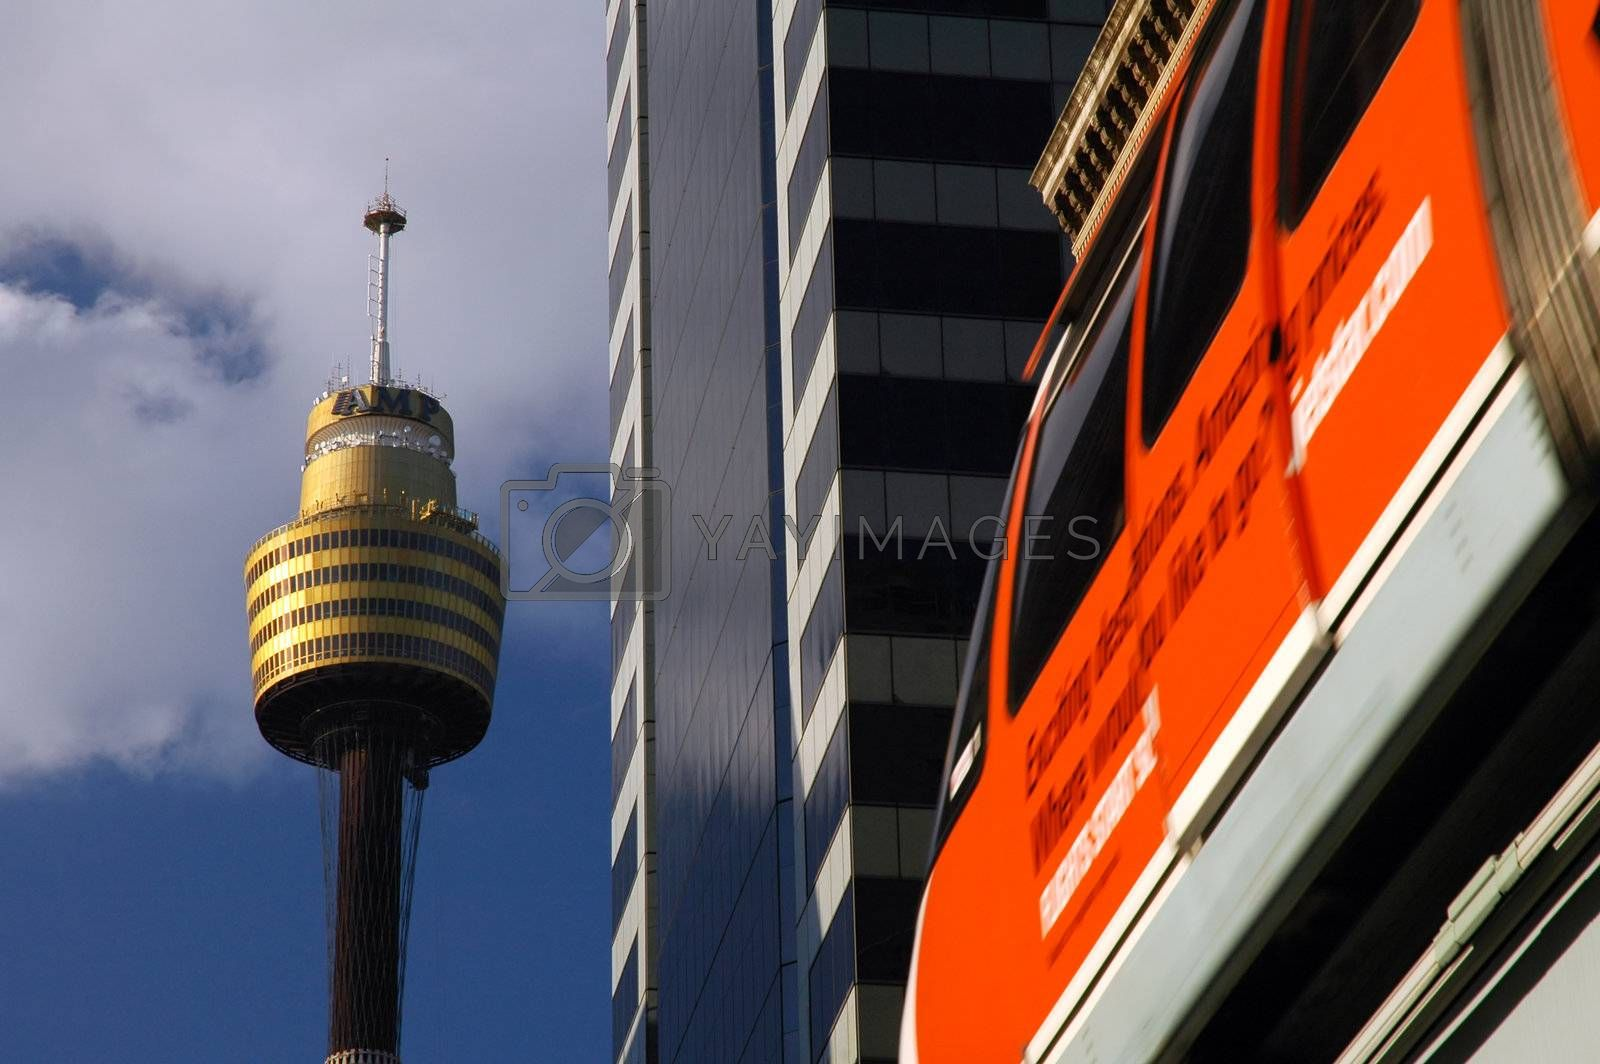 sydney tower and red monorail, detail photography